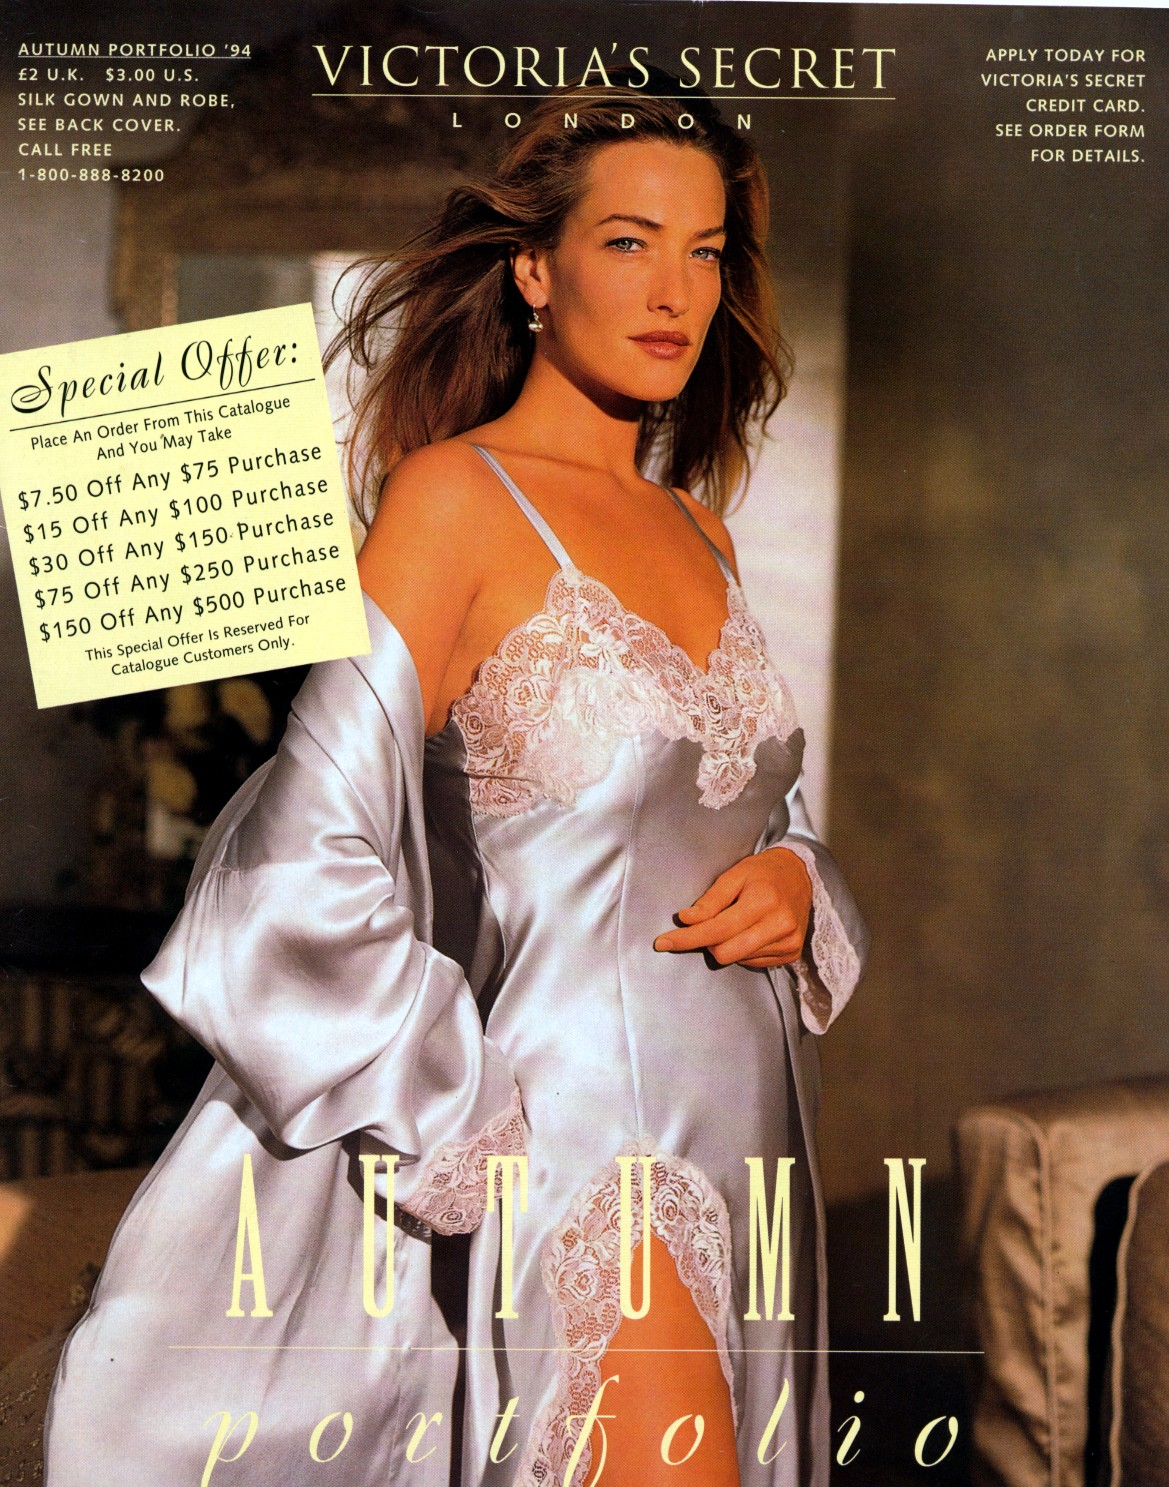 adc85f43d916a A beautiful nightgown and robe being modeled by Tatjana Patitz for the  catalog. Why they still can't sell clothing like this is beyond me.